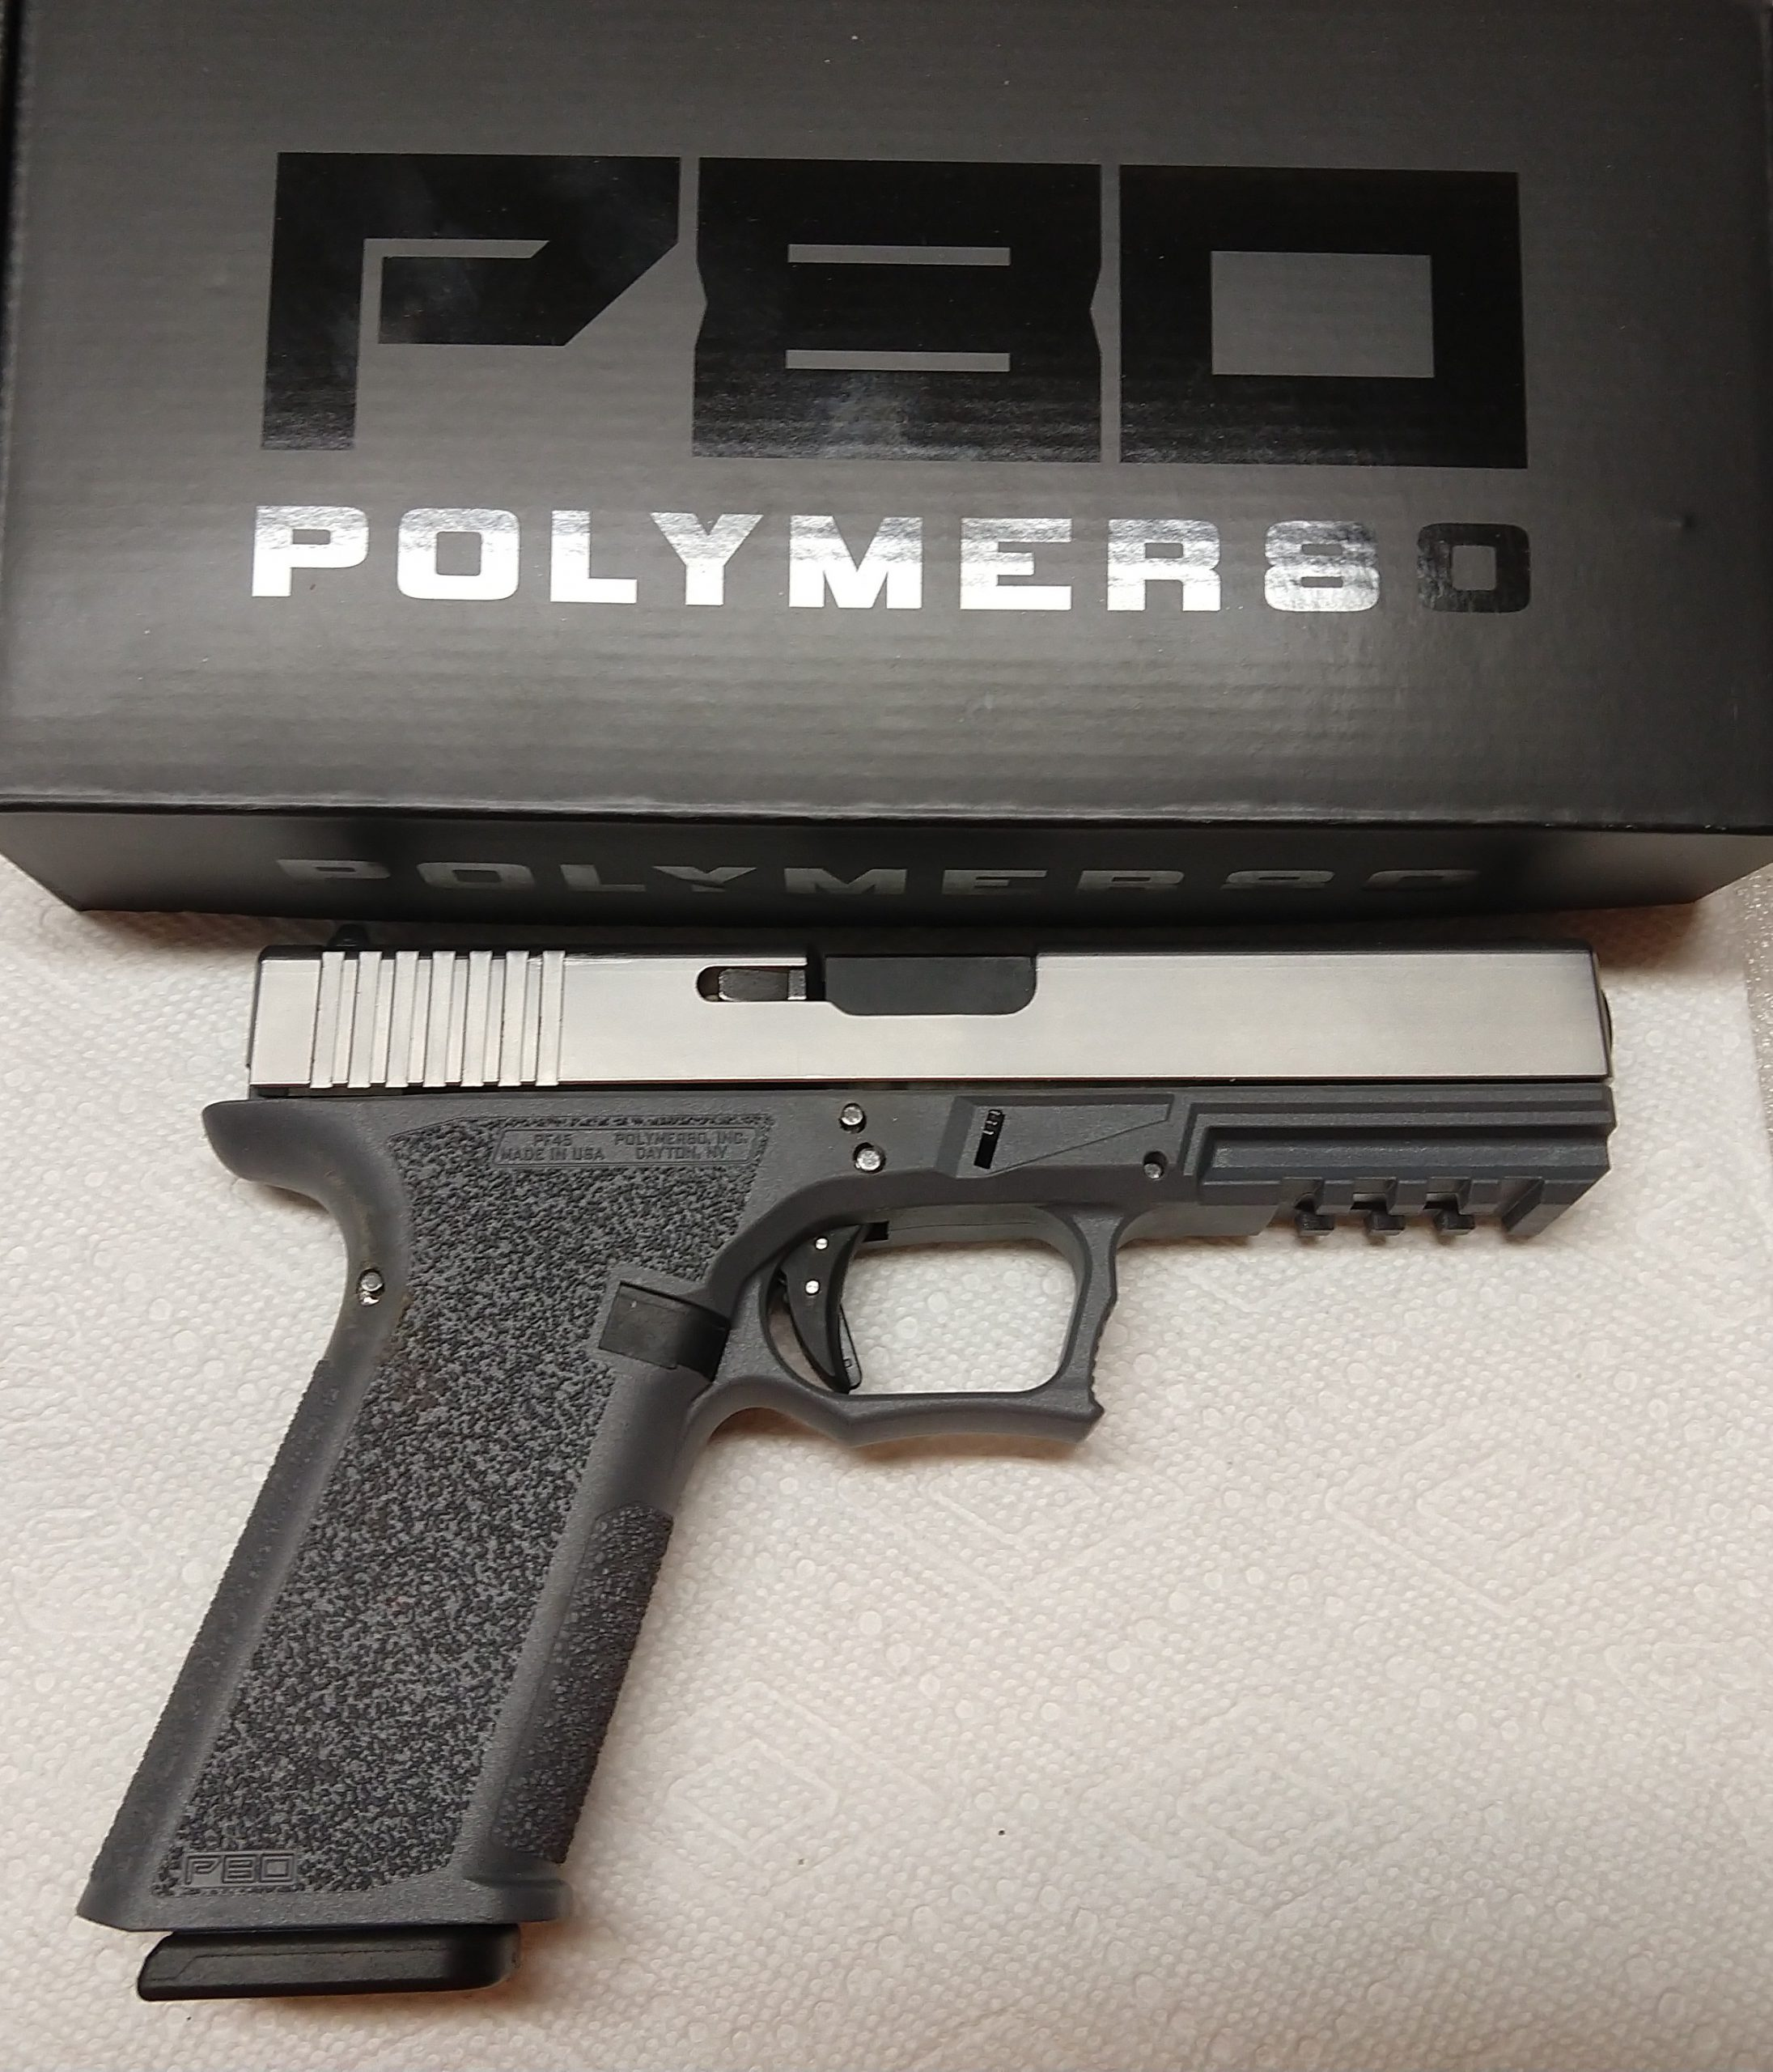 Washington DC files civil suit against Polymer 80 claiming gun parts are really illegal partially assembled firearms.